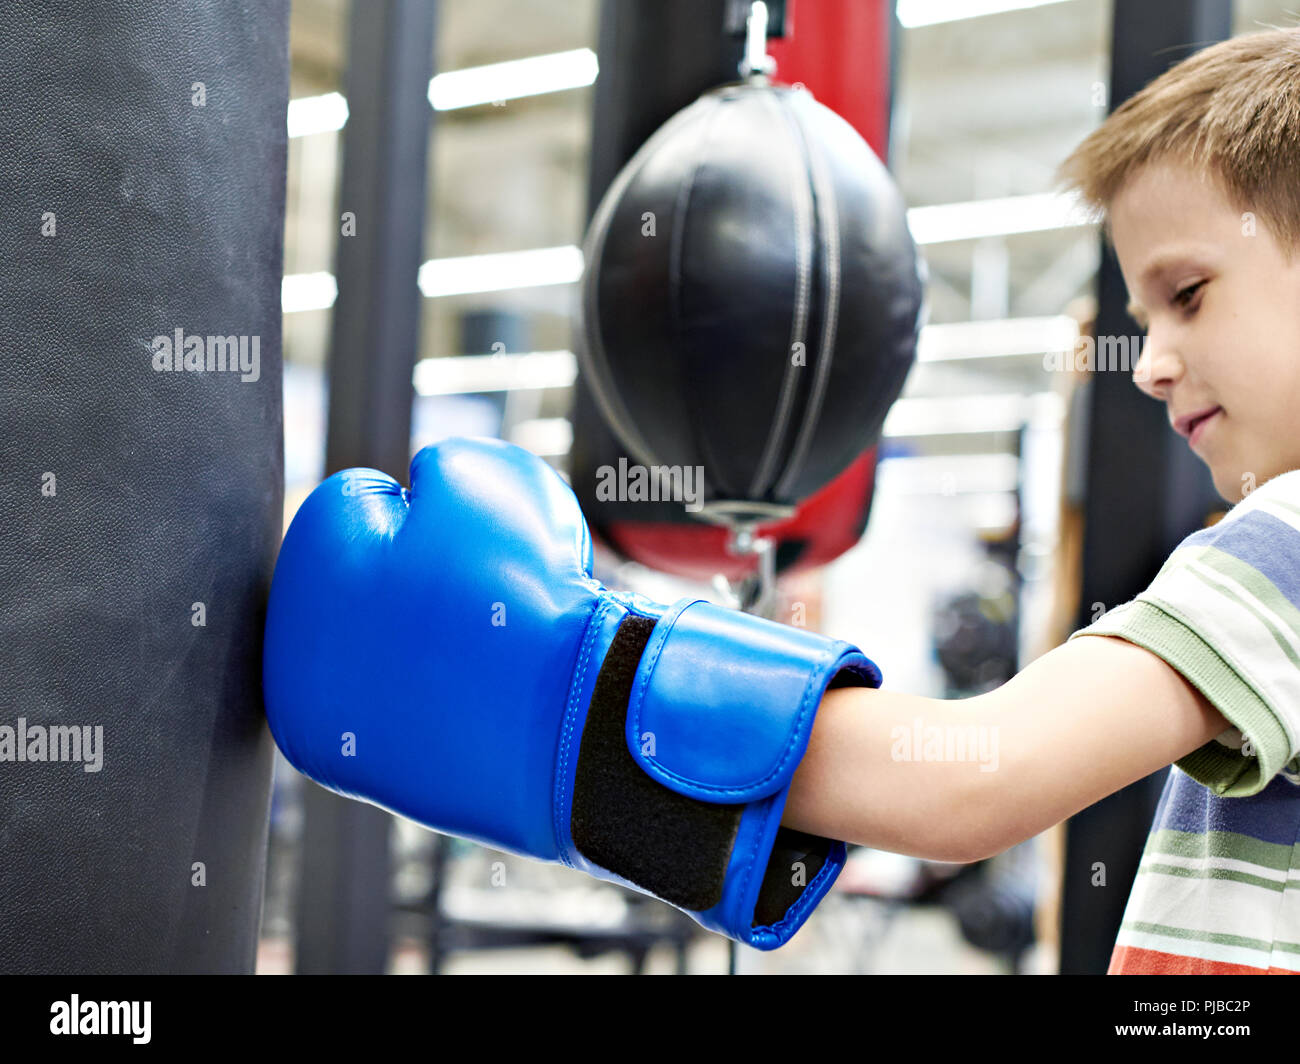 Boy in a boxing glove and punching bag - Stock Image